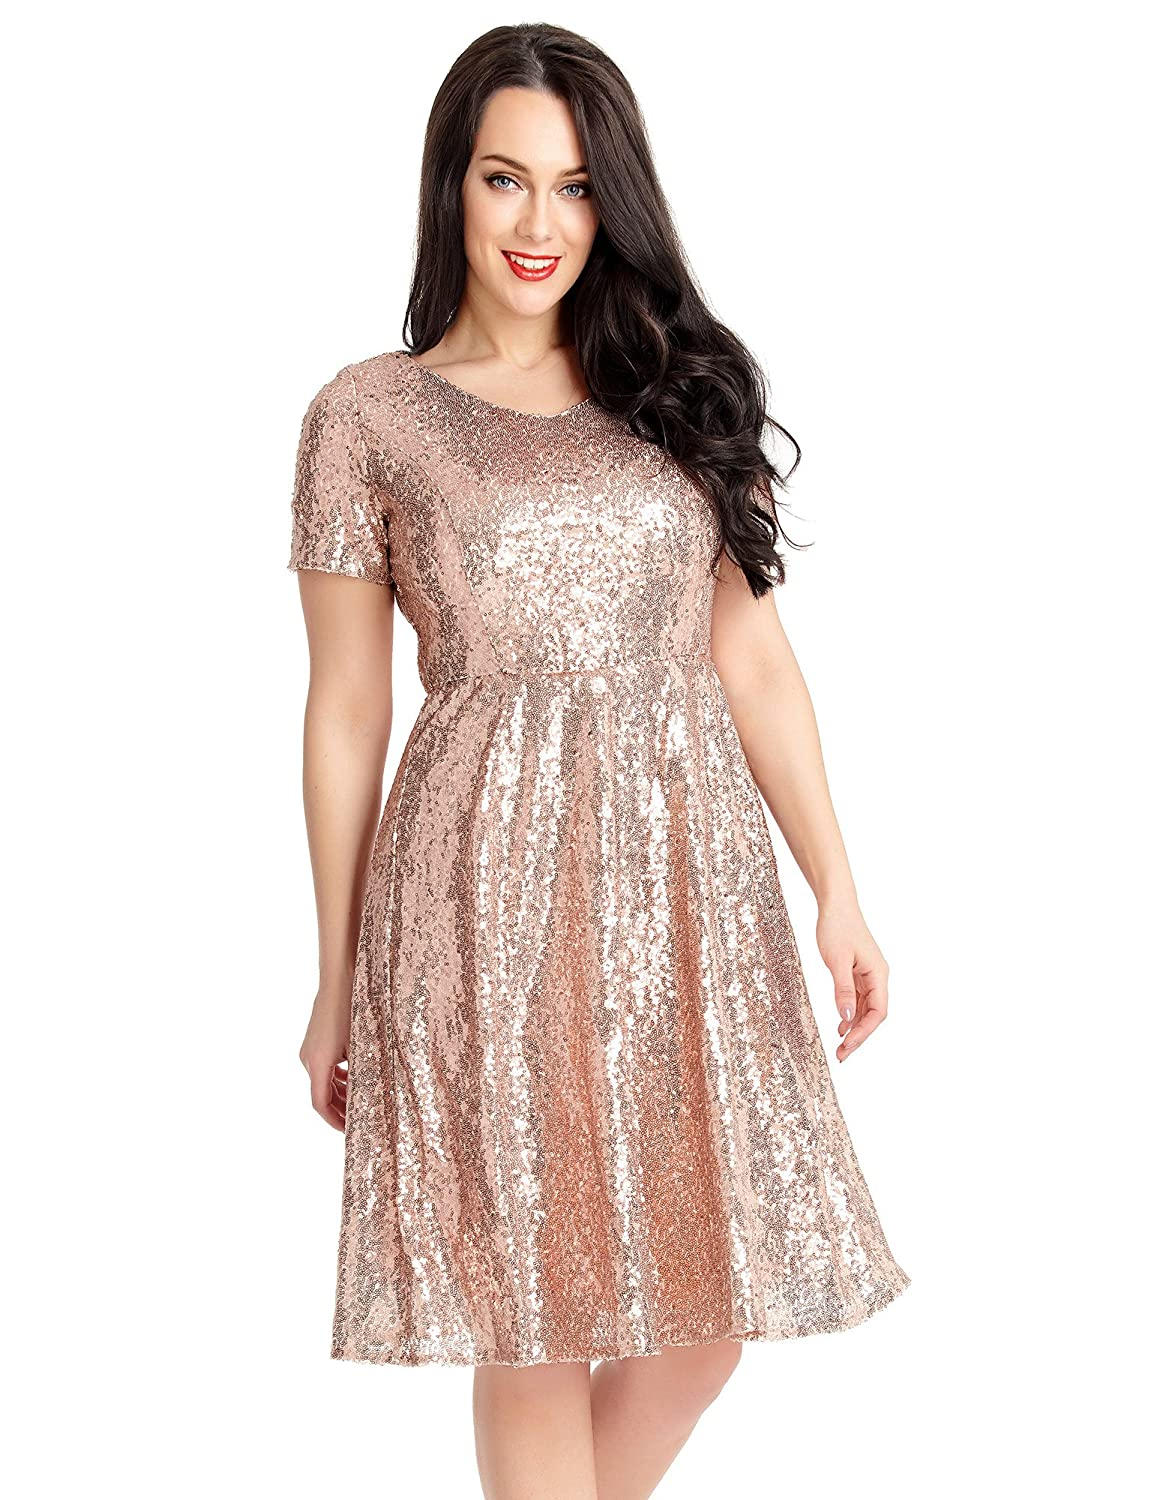 eb0008207b5 Top 10 wholesale Champagne Party Dress - Chinabrands.com